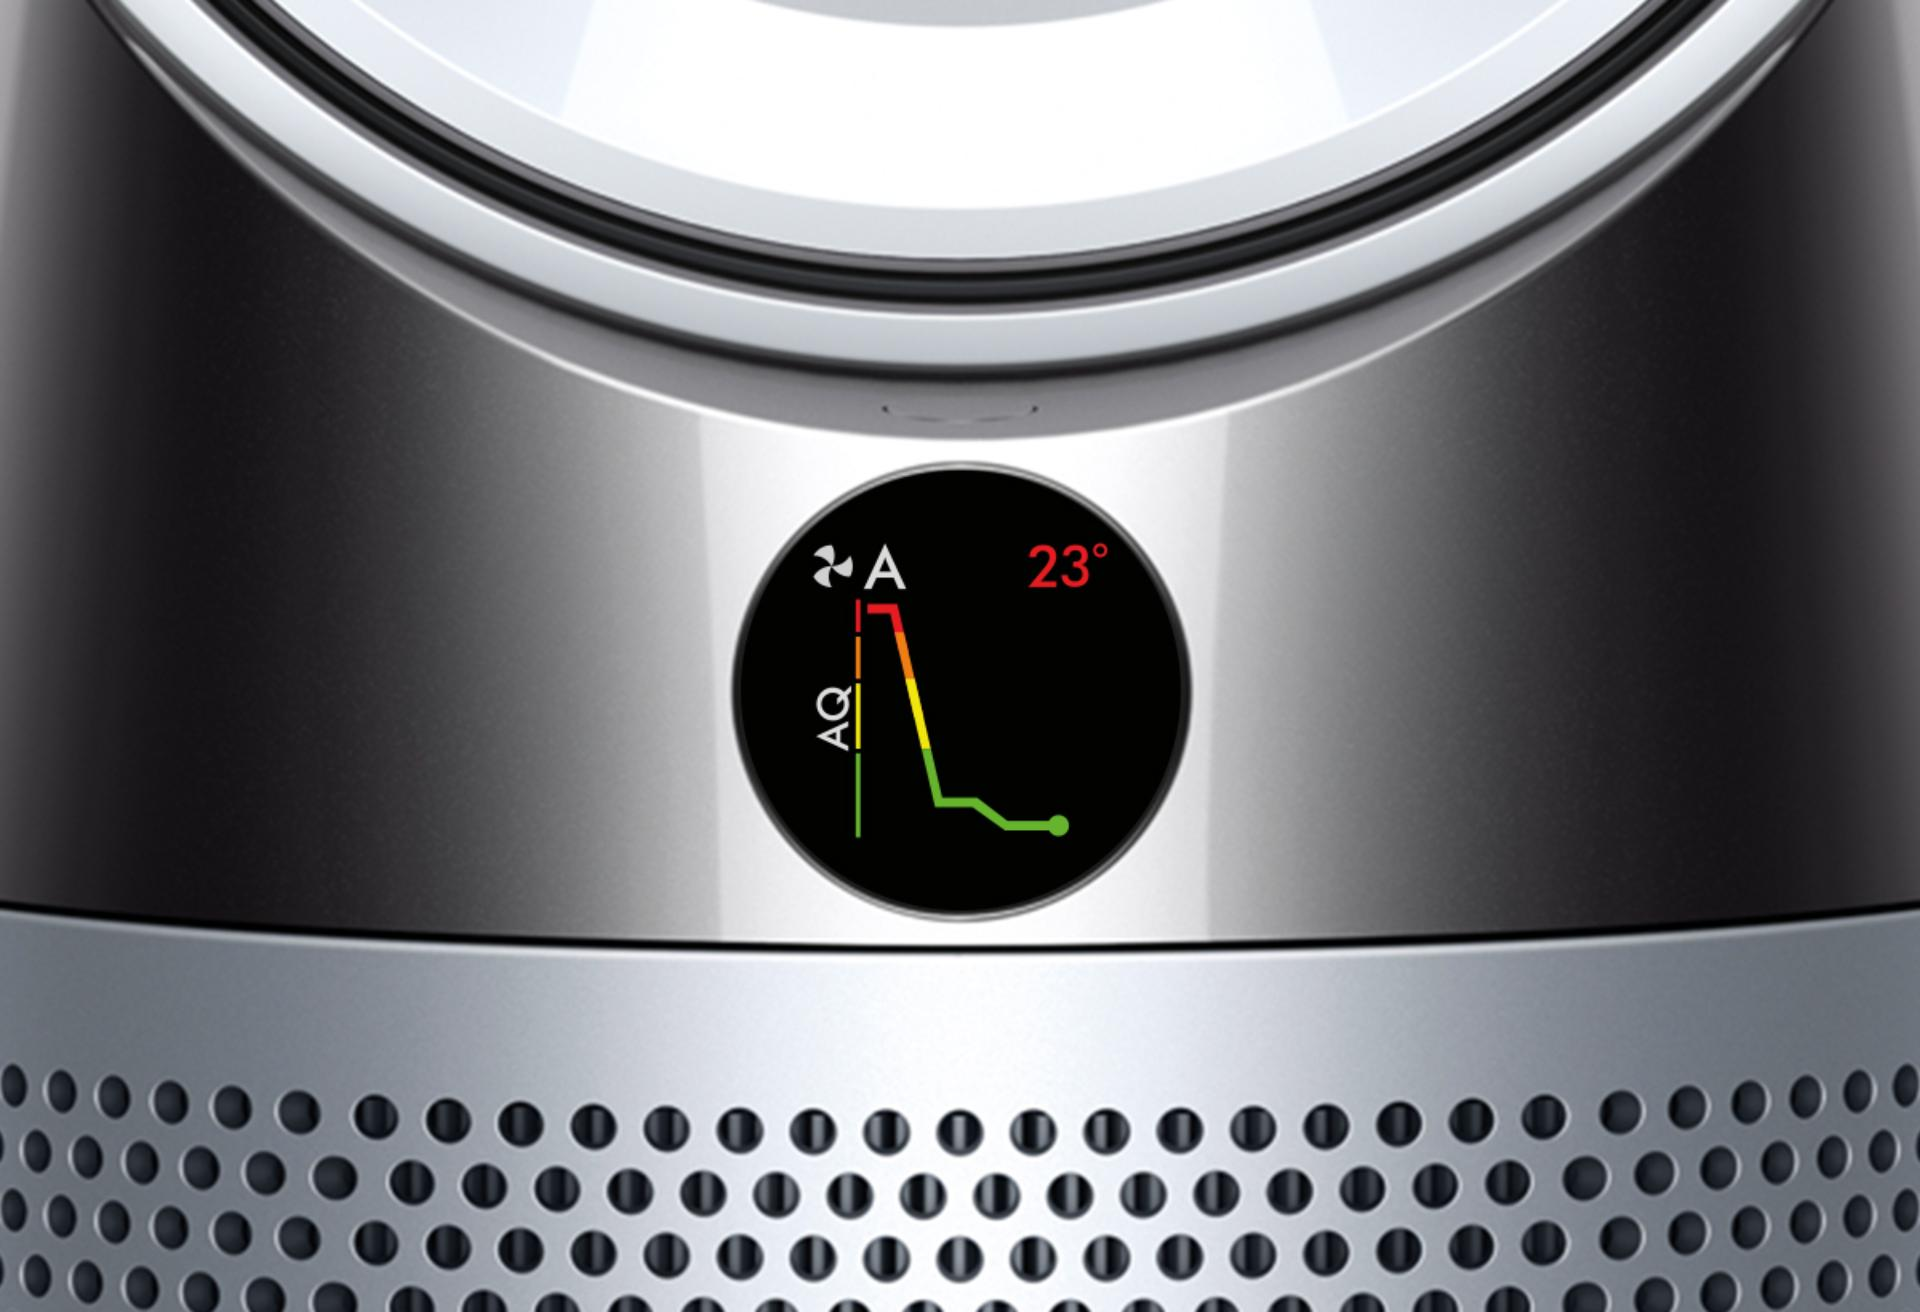 Dyson air purifiers have intelligent sensors that display real-time indoor air quality and indoor AQI